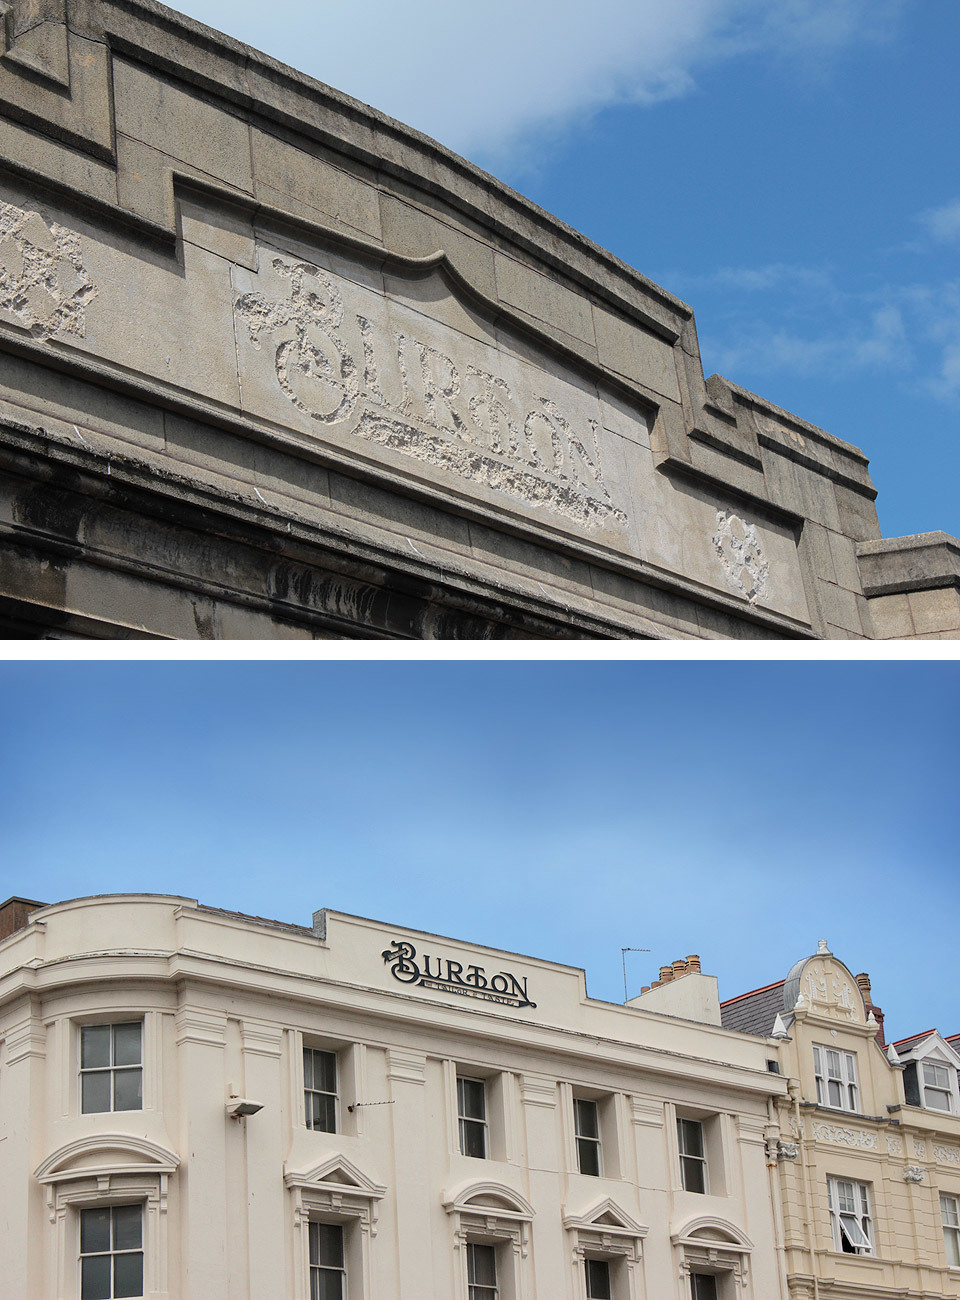 I was looking back through some old photographs and I spotted two that were linked together. The bottom photograph was taken in Llandudno and the photograph at the top was taken in Chester. The one from Chester has been removed from the building, but you can still clearly see that it read 'Burton'. The full sign reads 'Montague Burton Tailor of Taste', which is the origins of todays 'Burton' clothing shops. Sir Montague Burton is thought to have coined the phrase 'The Full Monty'.